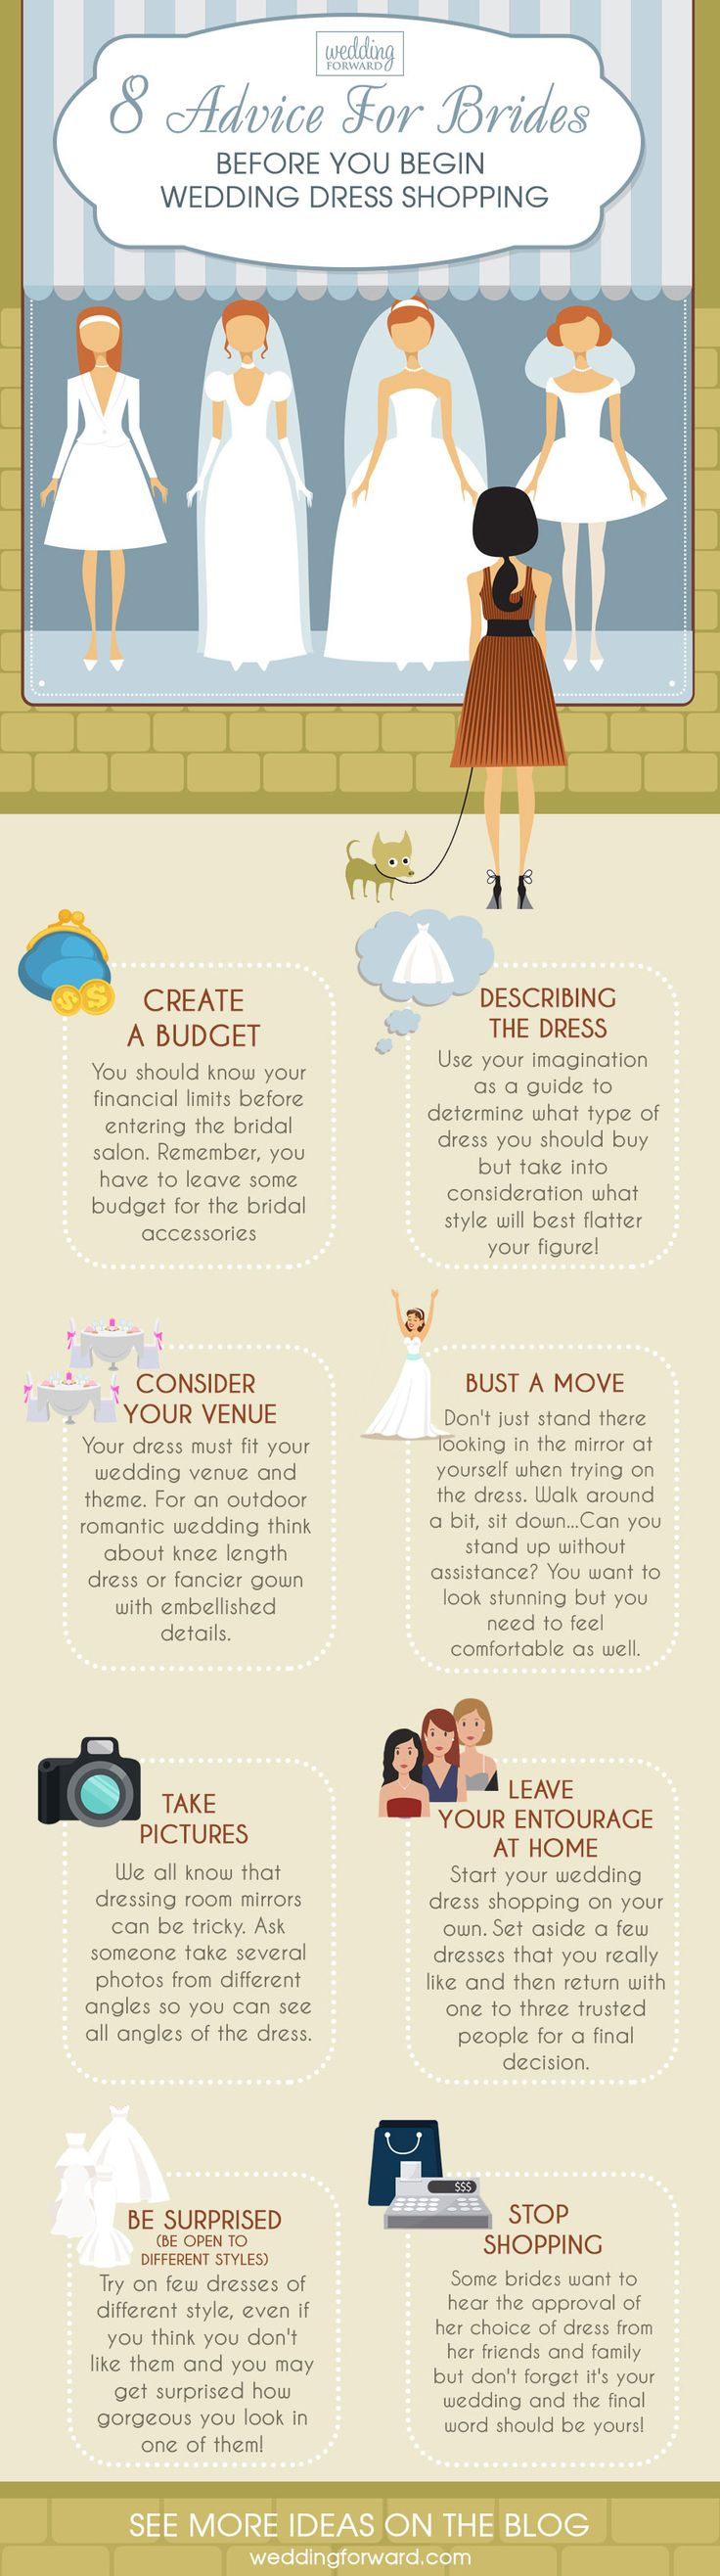 12 Wedding Dress Infographics To Make Your Shopping Easier ❤️ The most useful wedding dress infographics that will help you to make the right choice. Advice before your start wedding dress shopping. See more: http://www.weddingforward.com/wedding-dress-infographics/ #wedding #dresses #infographics